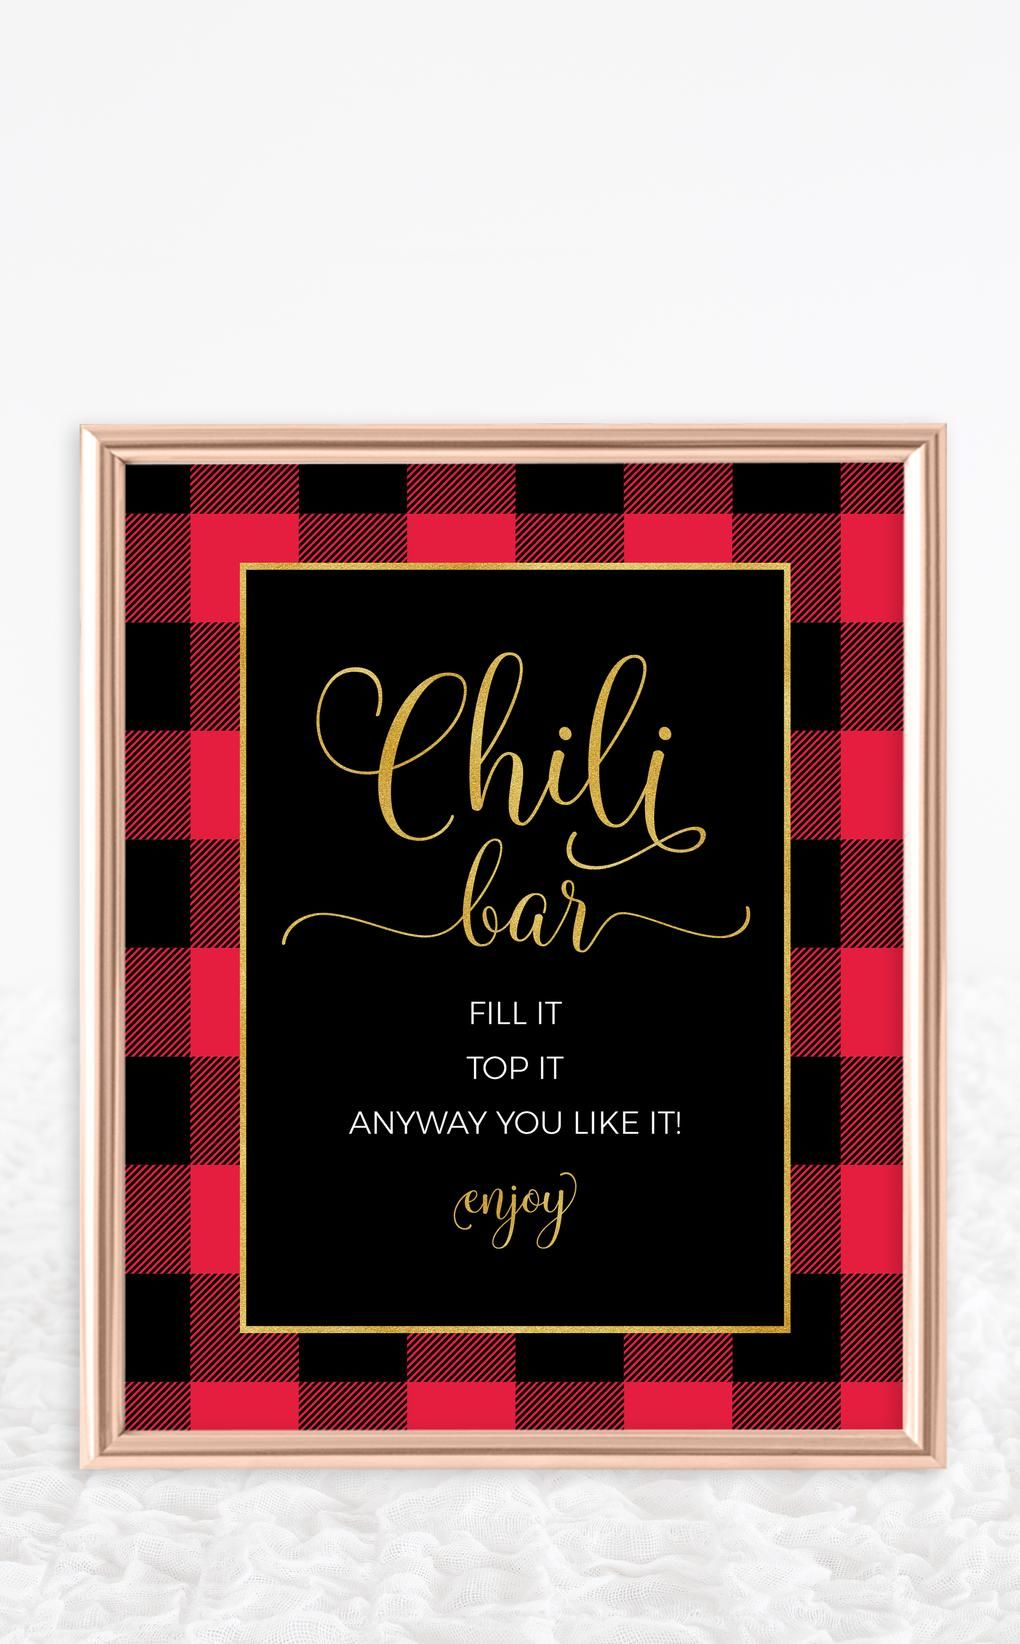 Flannel Chili Bar Kit